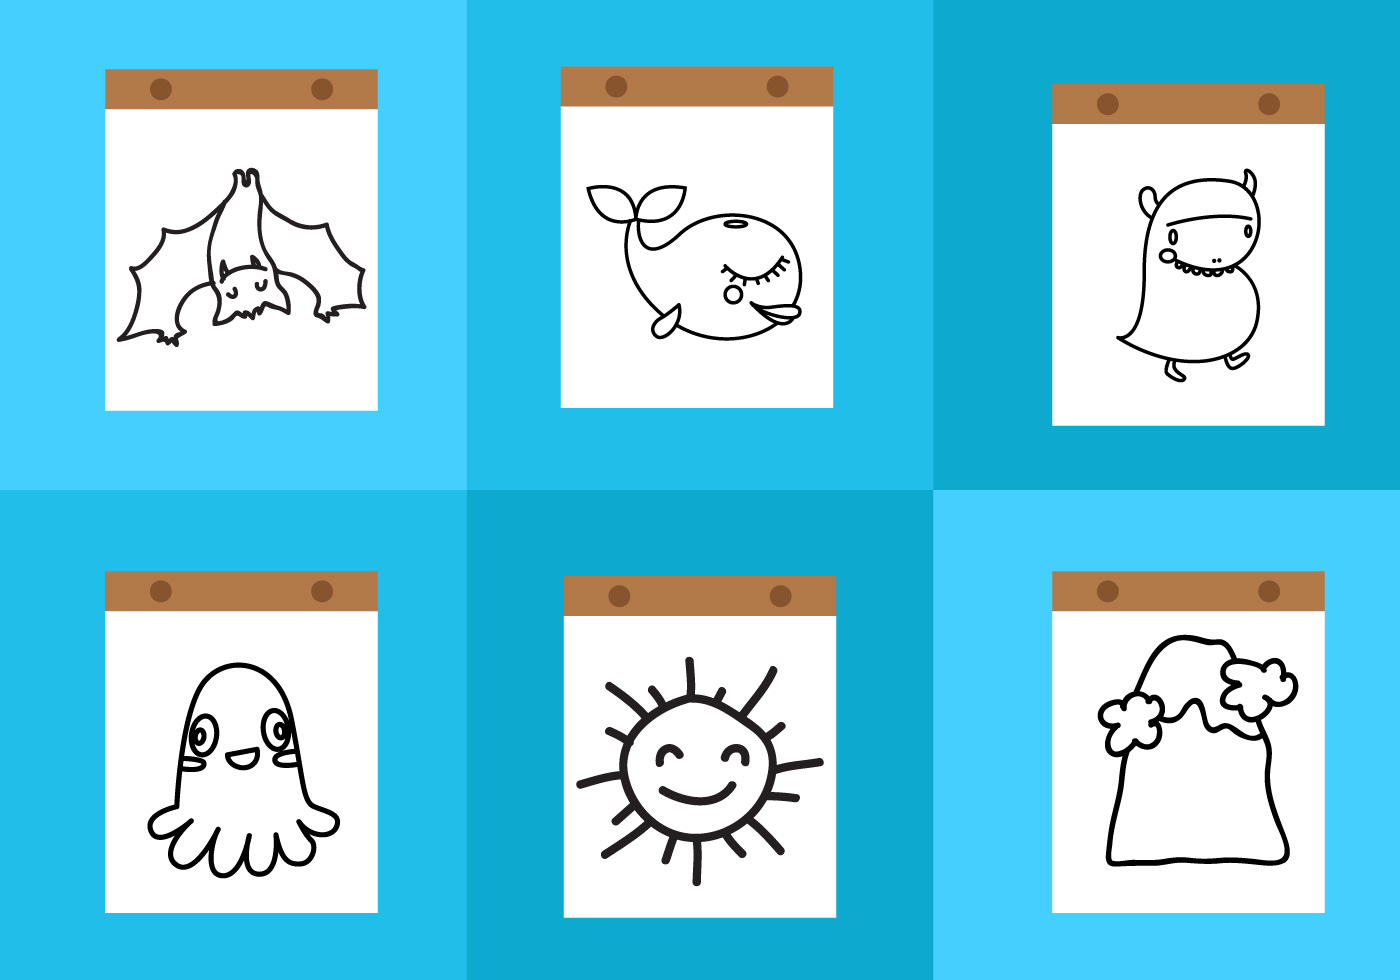 Coloring Pages Free Vector Art - (25634 Free Downloads)